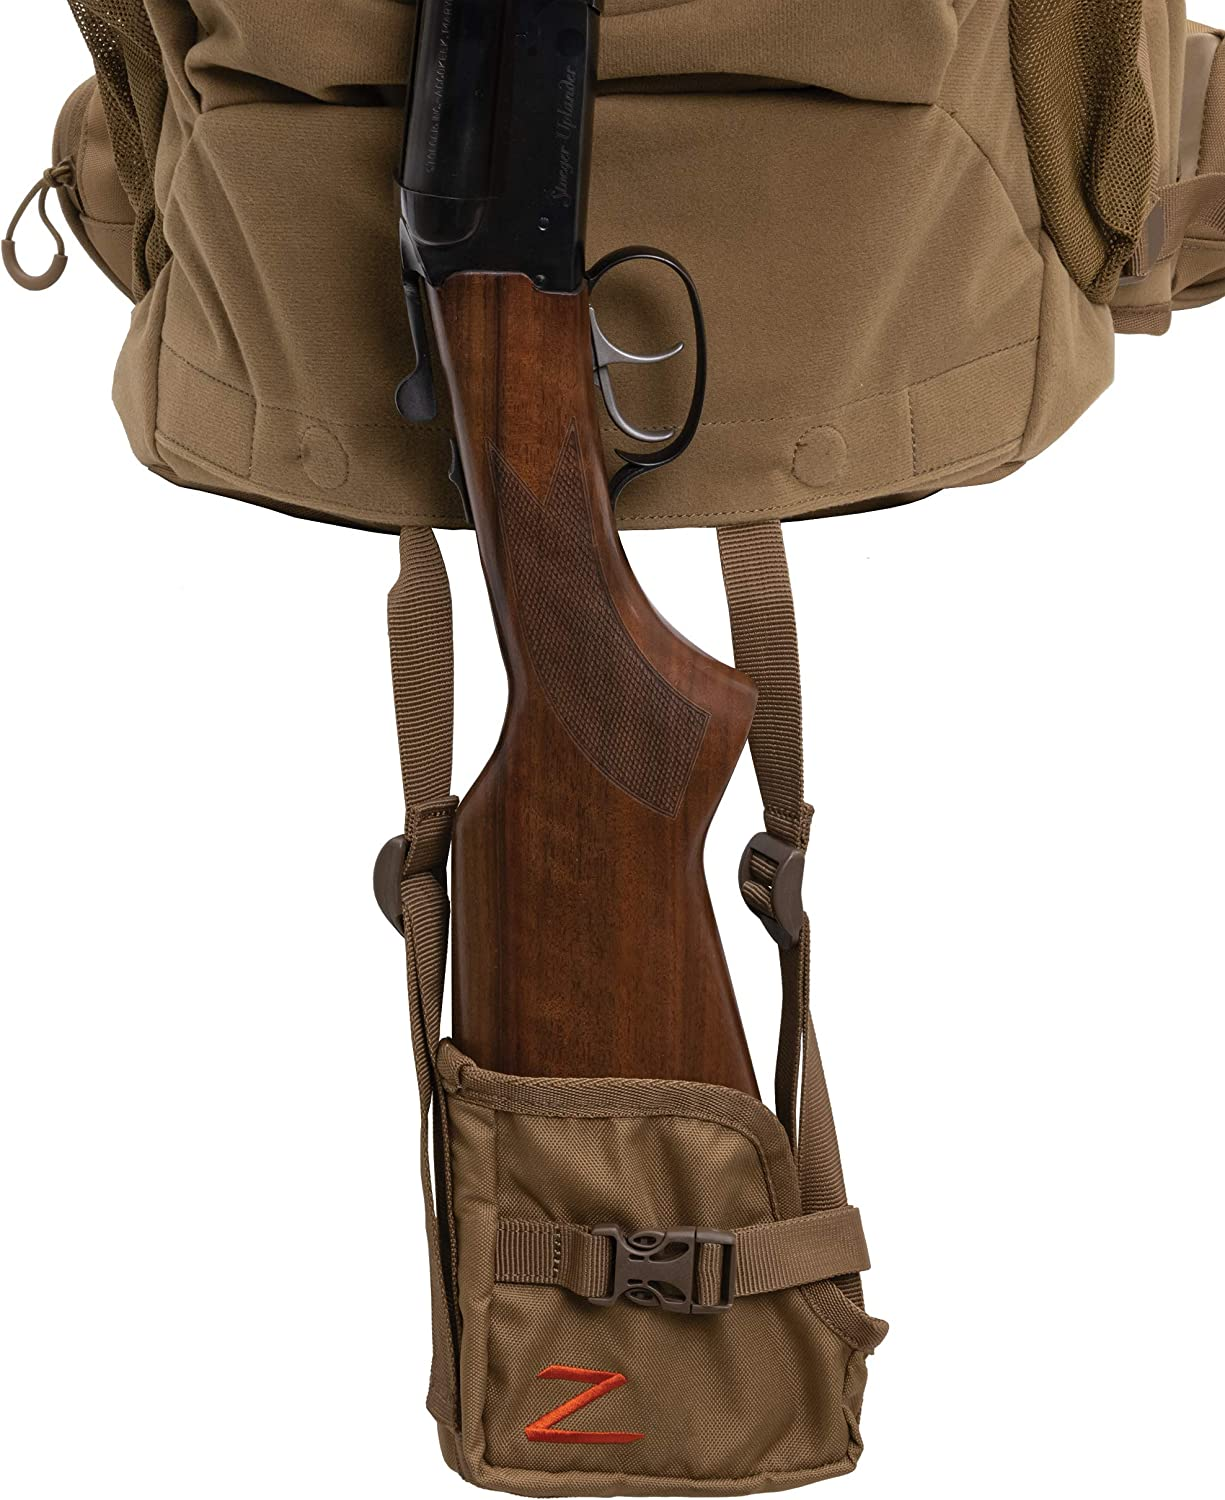 best hunting backpack with rifle holder